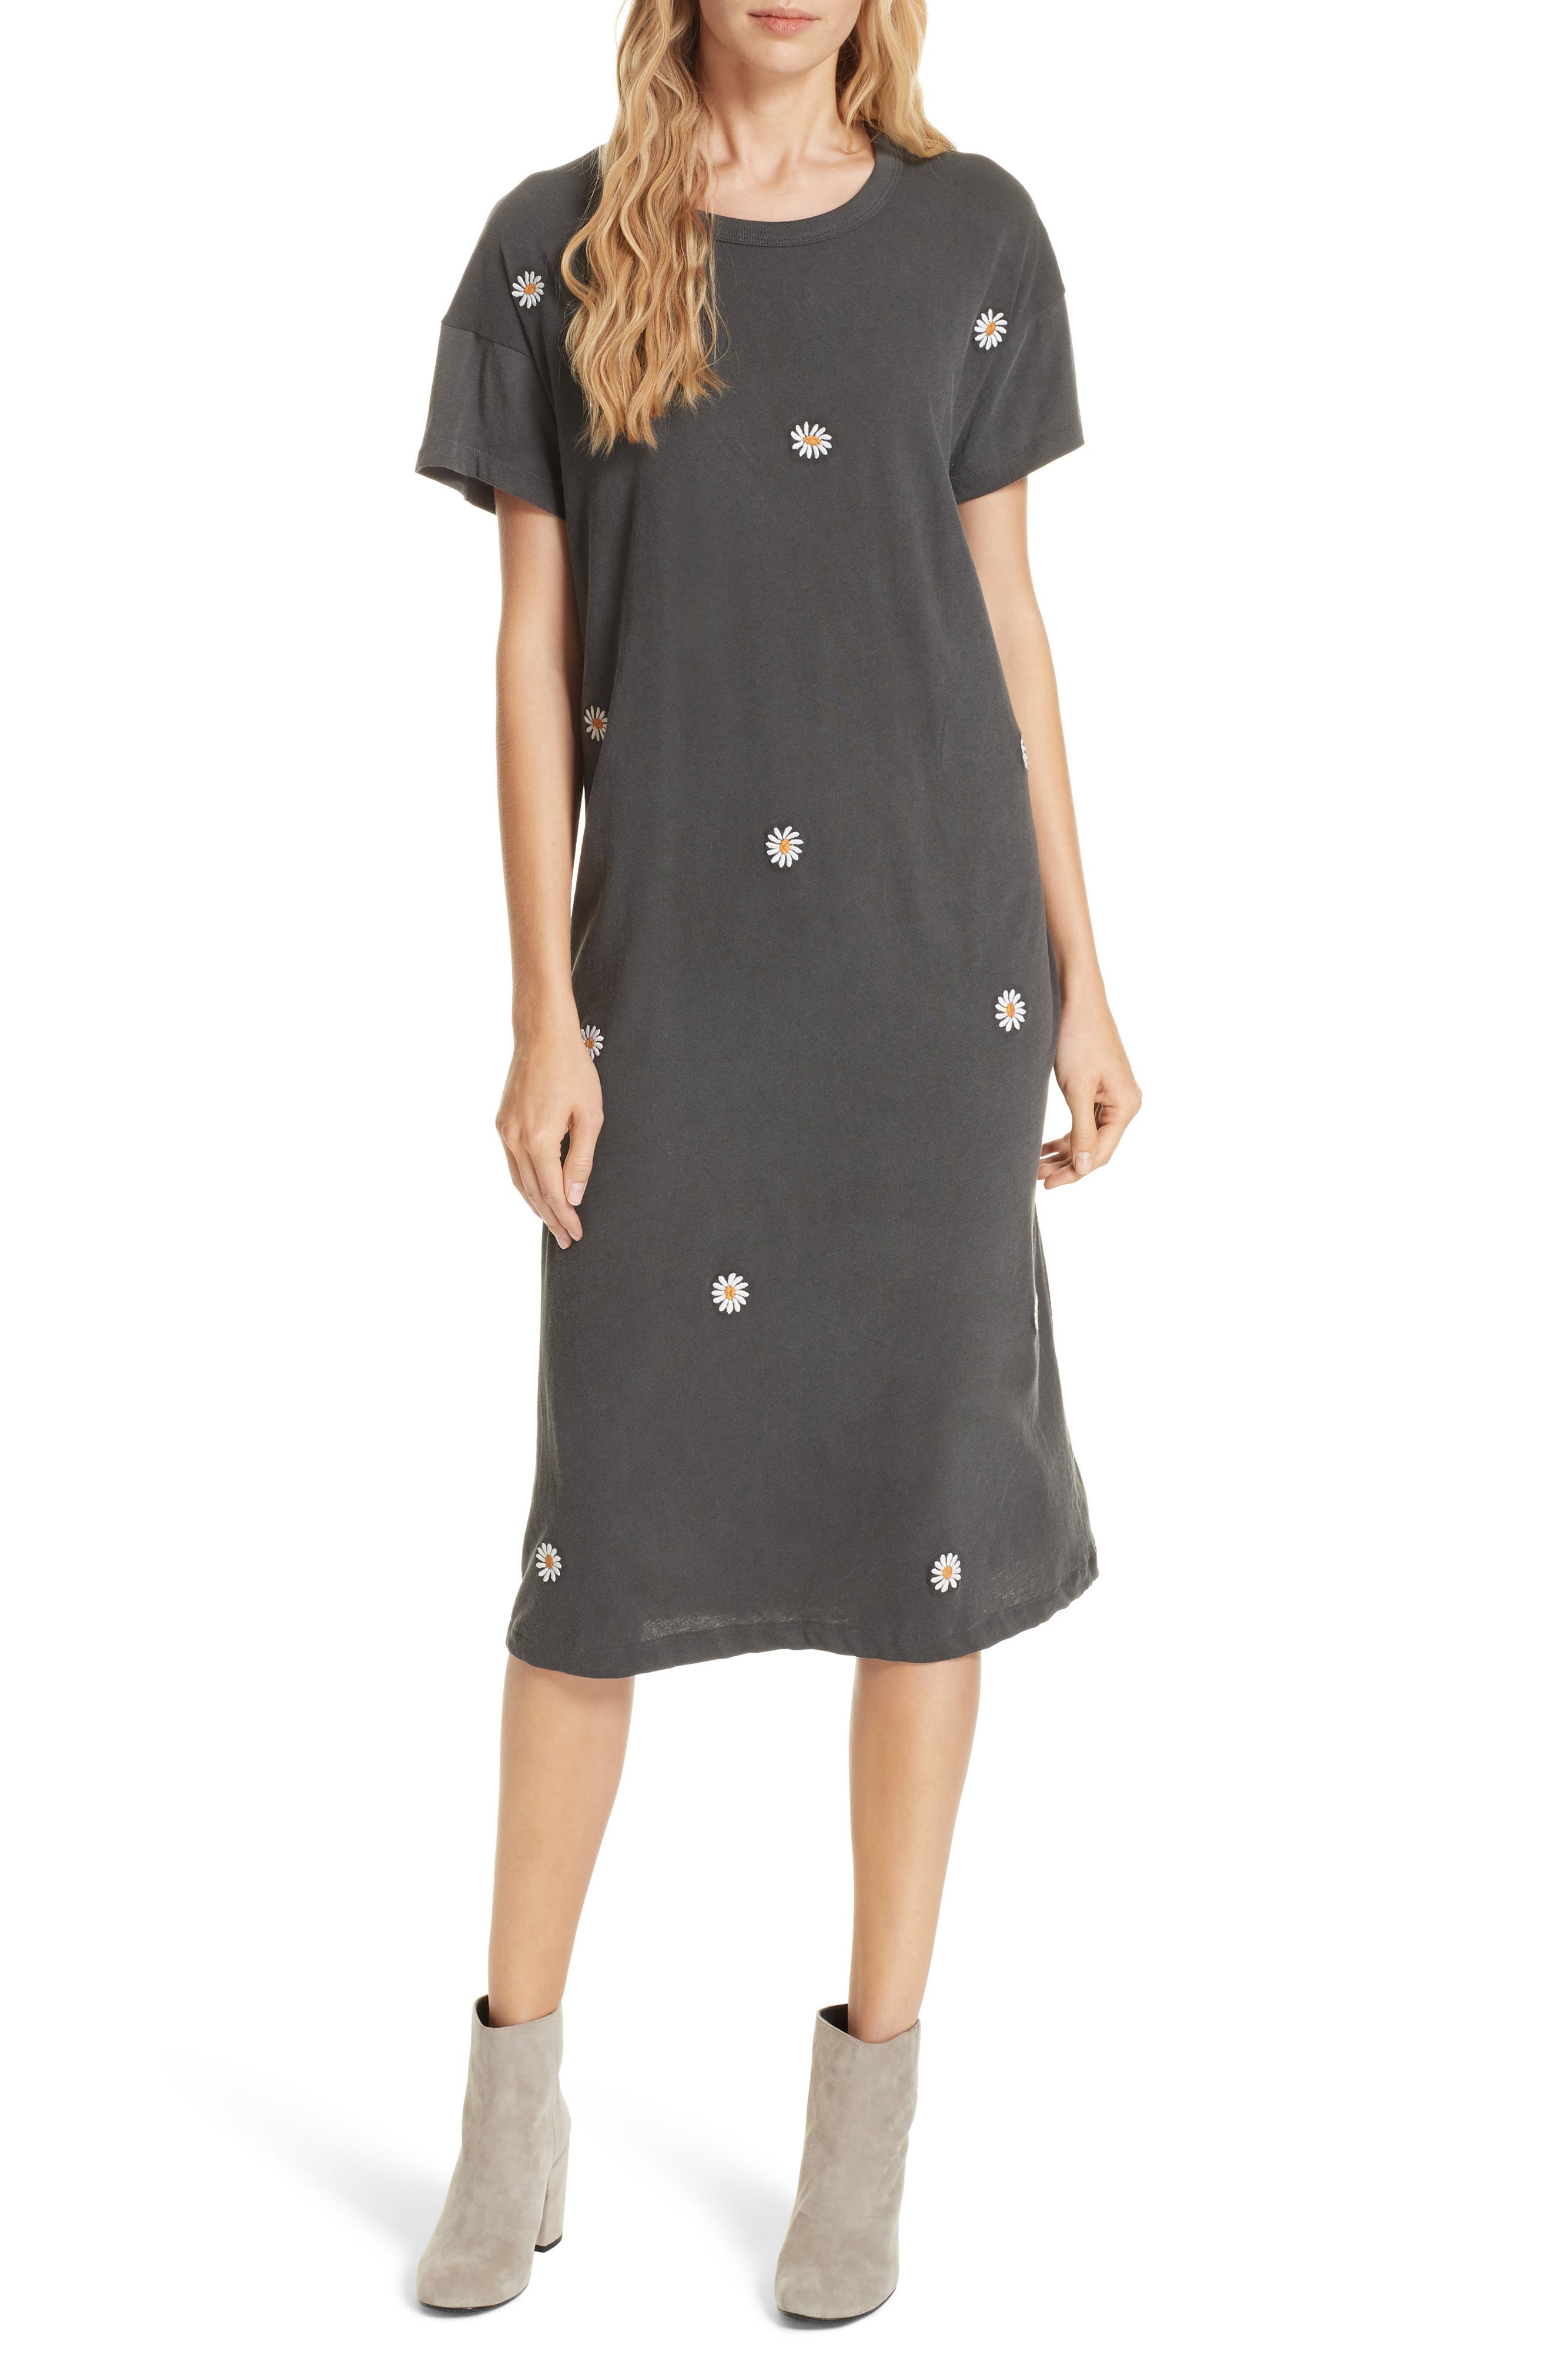 THE GREAT BOXY EMBROIDERED T-SHIRT DRESS